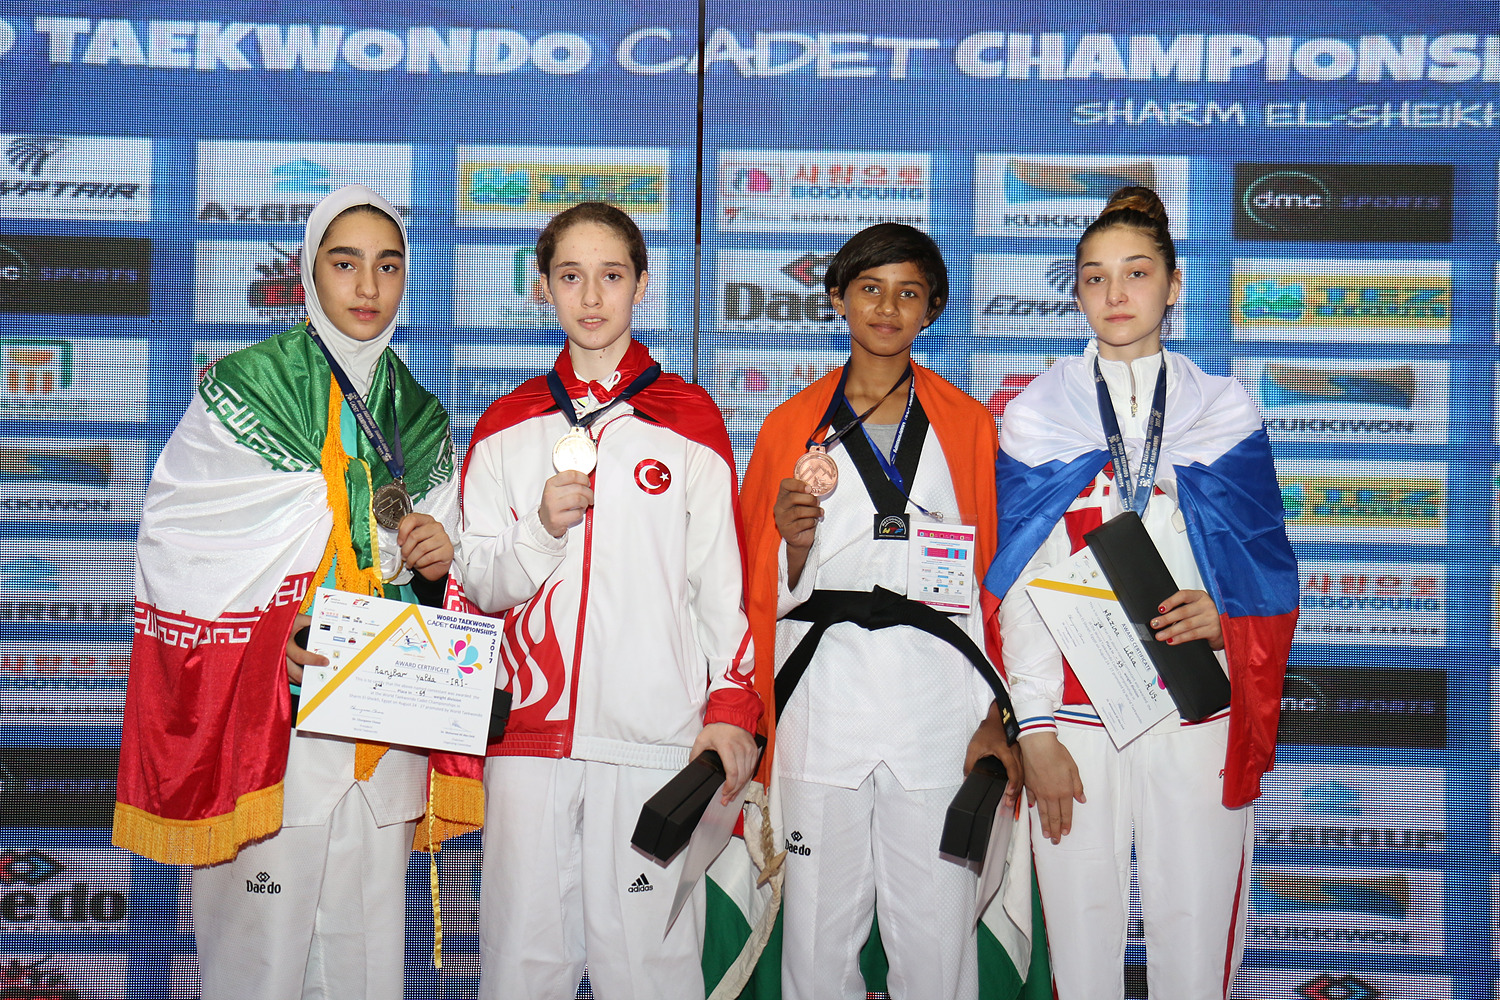 Award ceremony for F-59kg